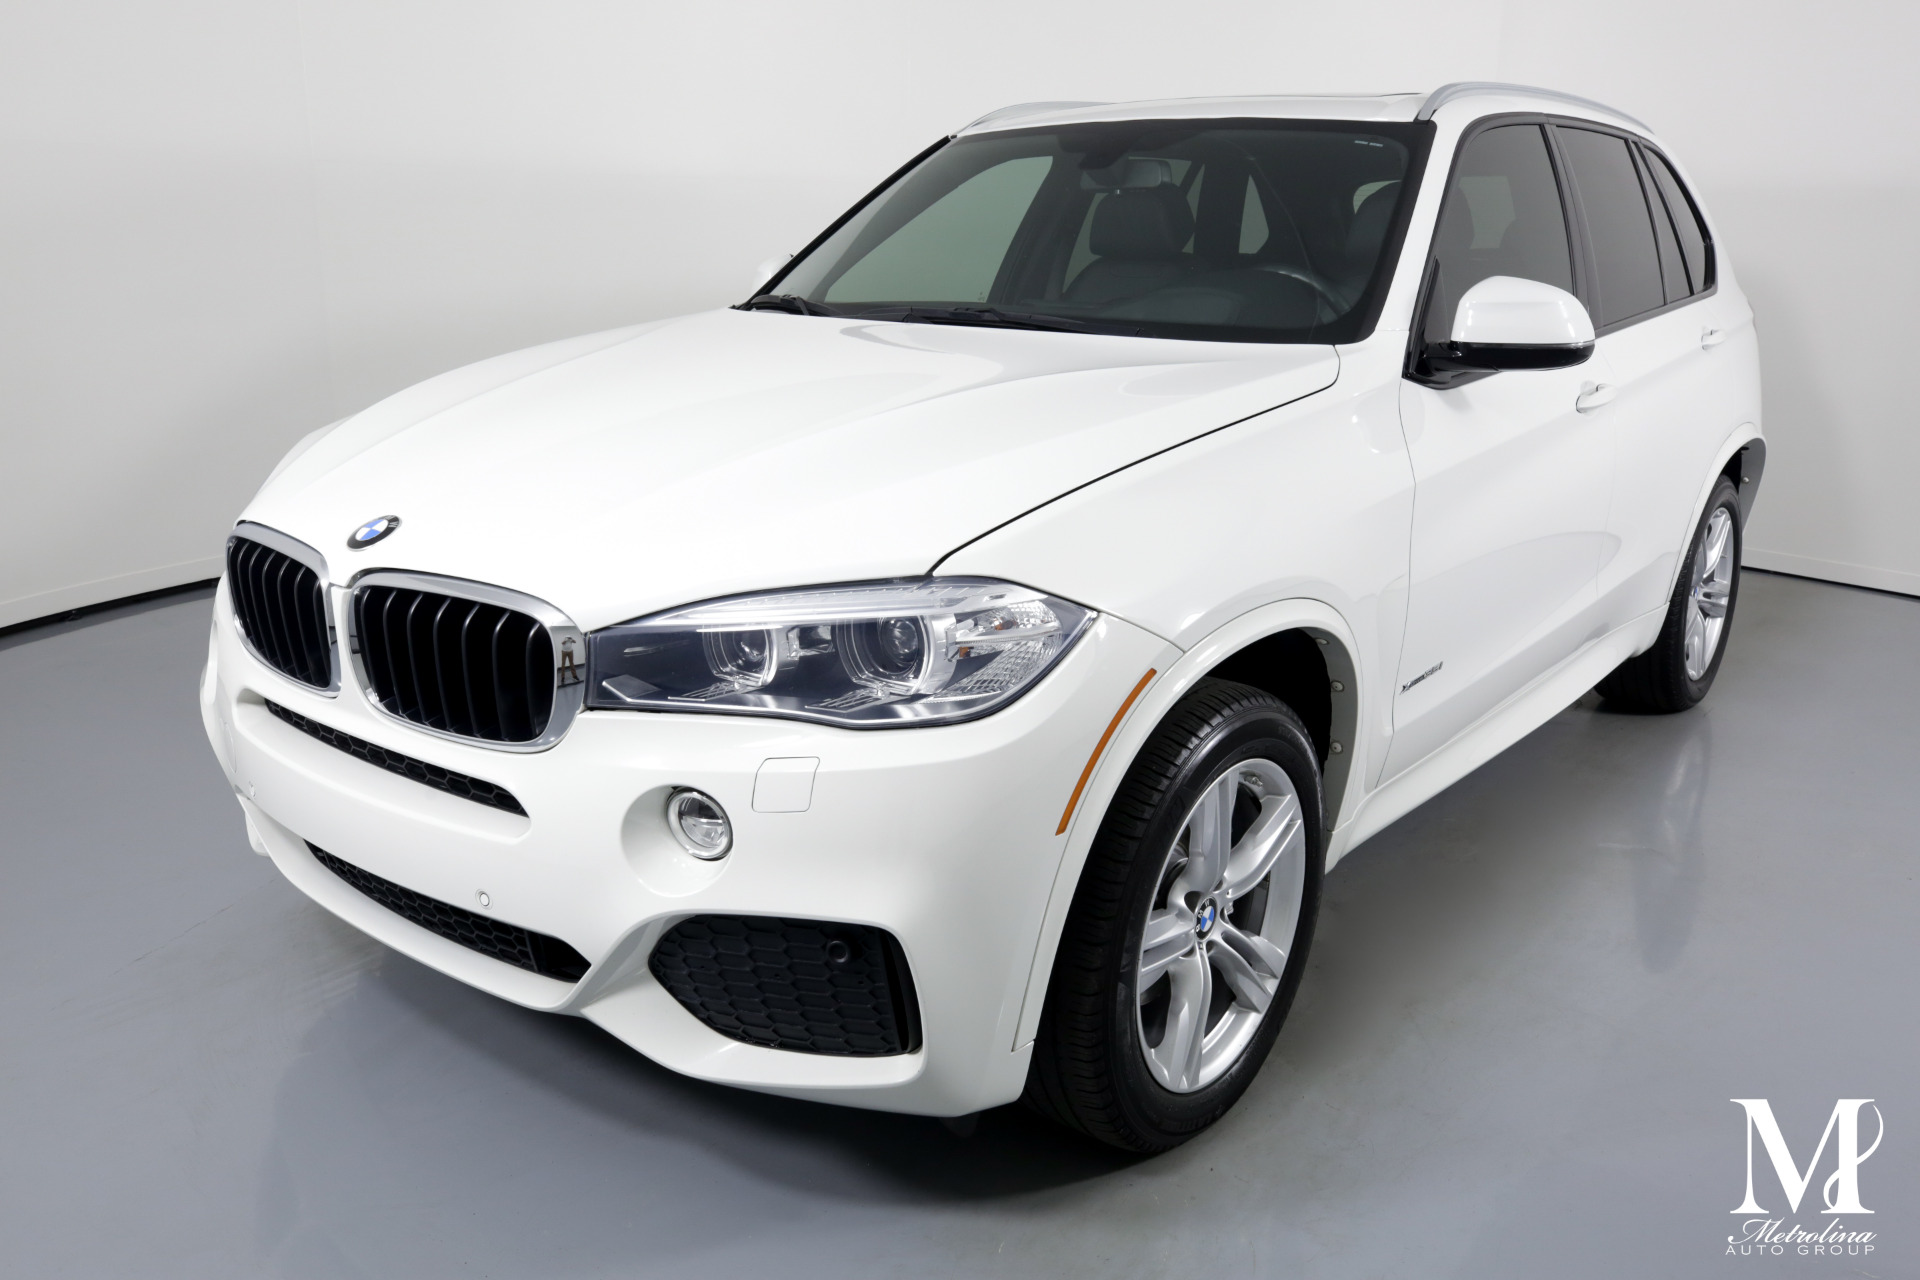 Used 2017 BMW X5 xDrive35i for sale $34,996 at Metrolina Auto Group in Charlotte NC 28217 - 4